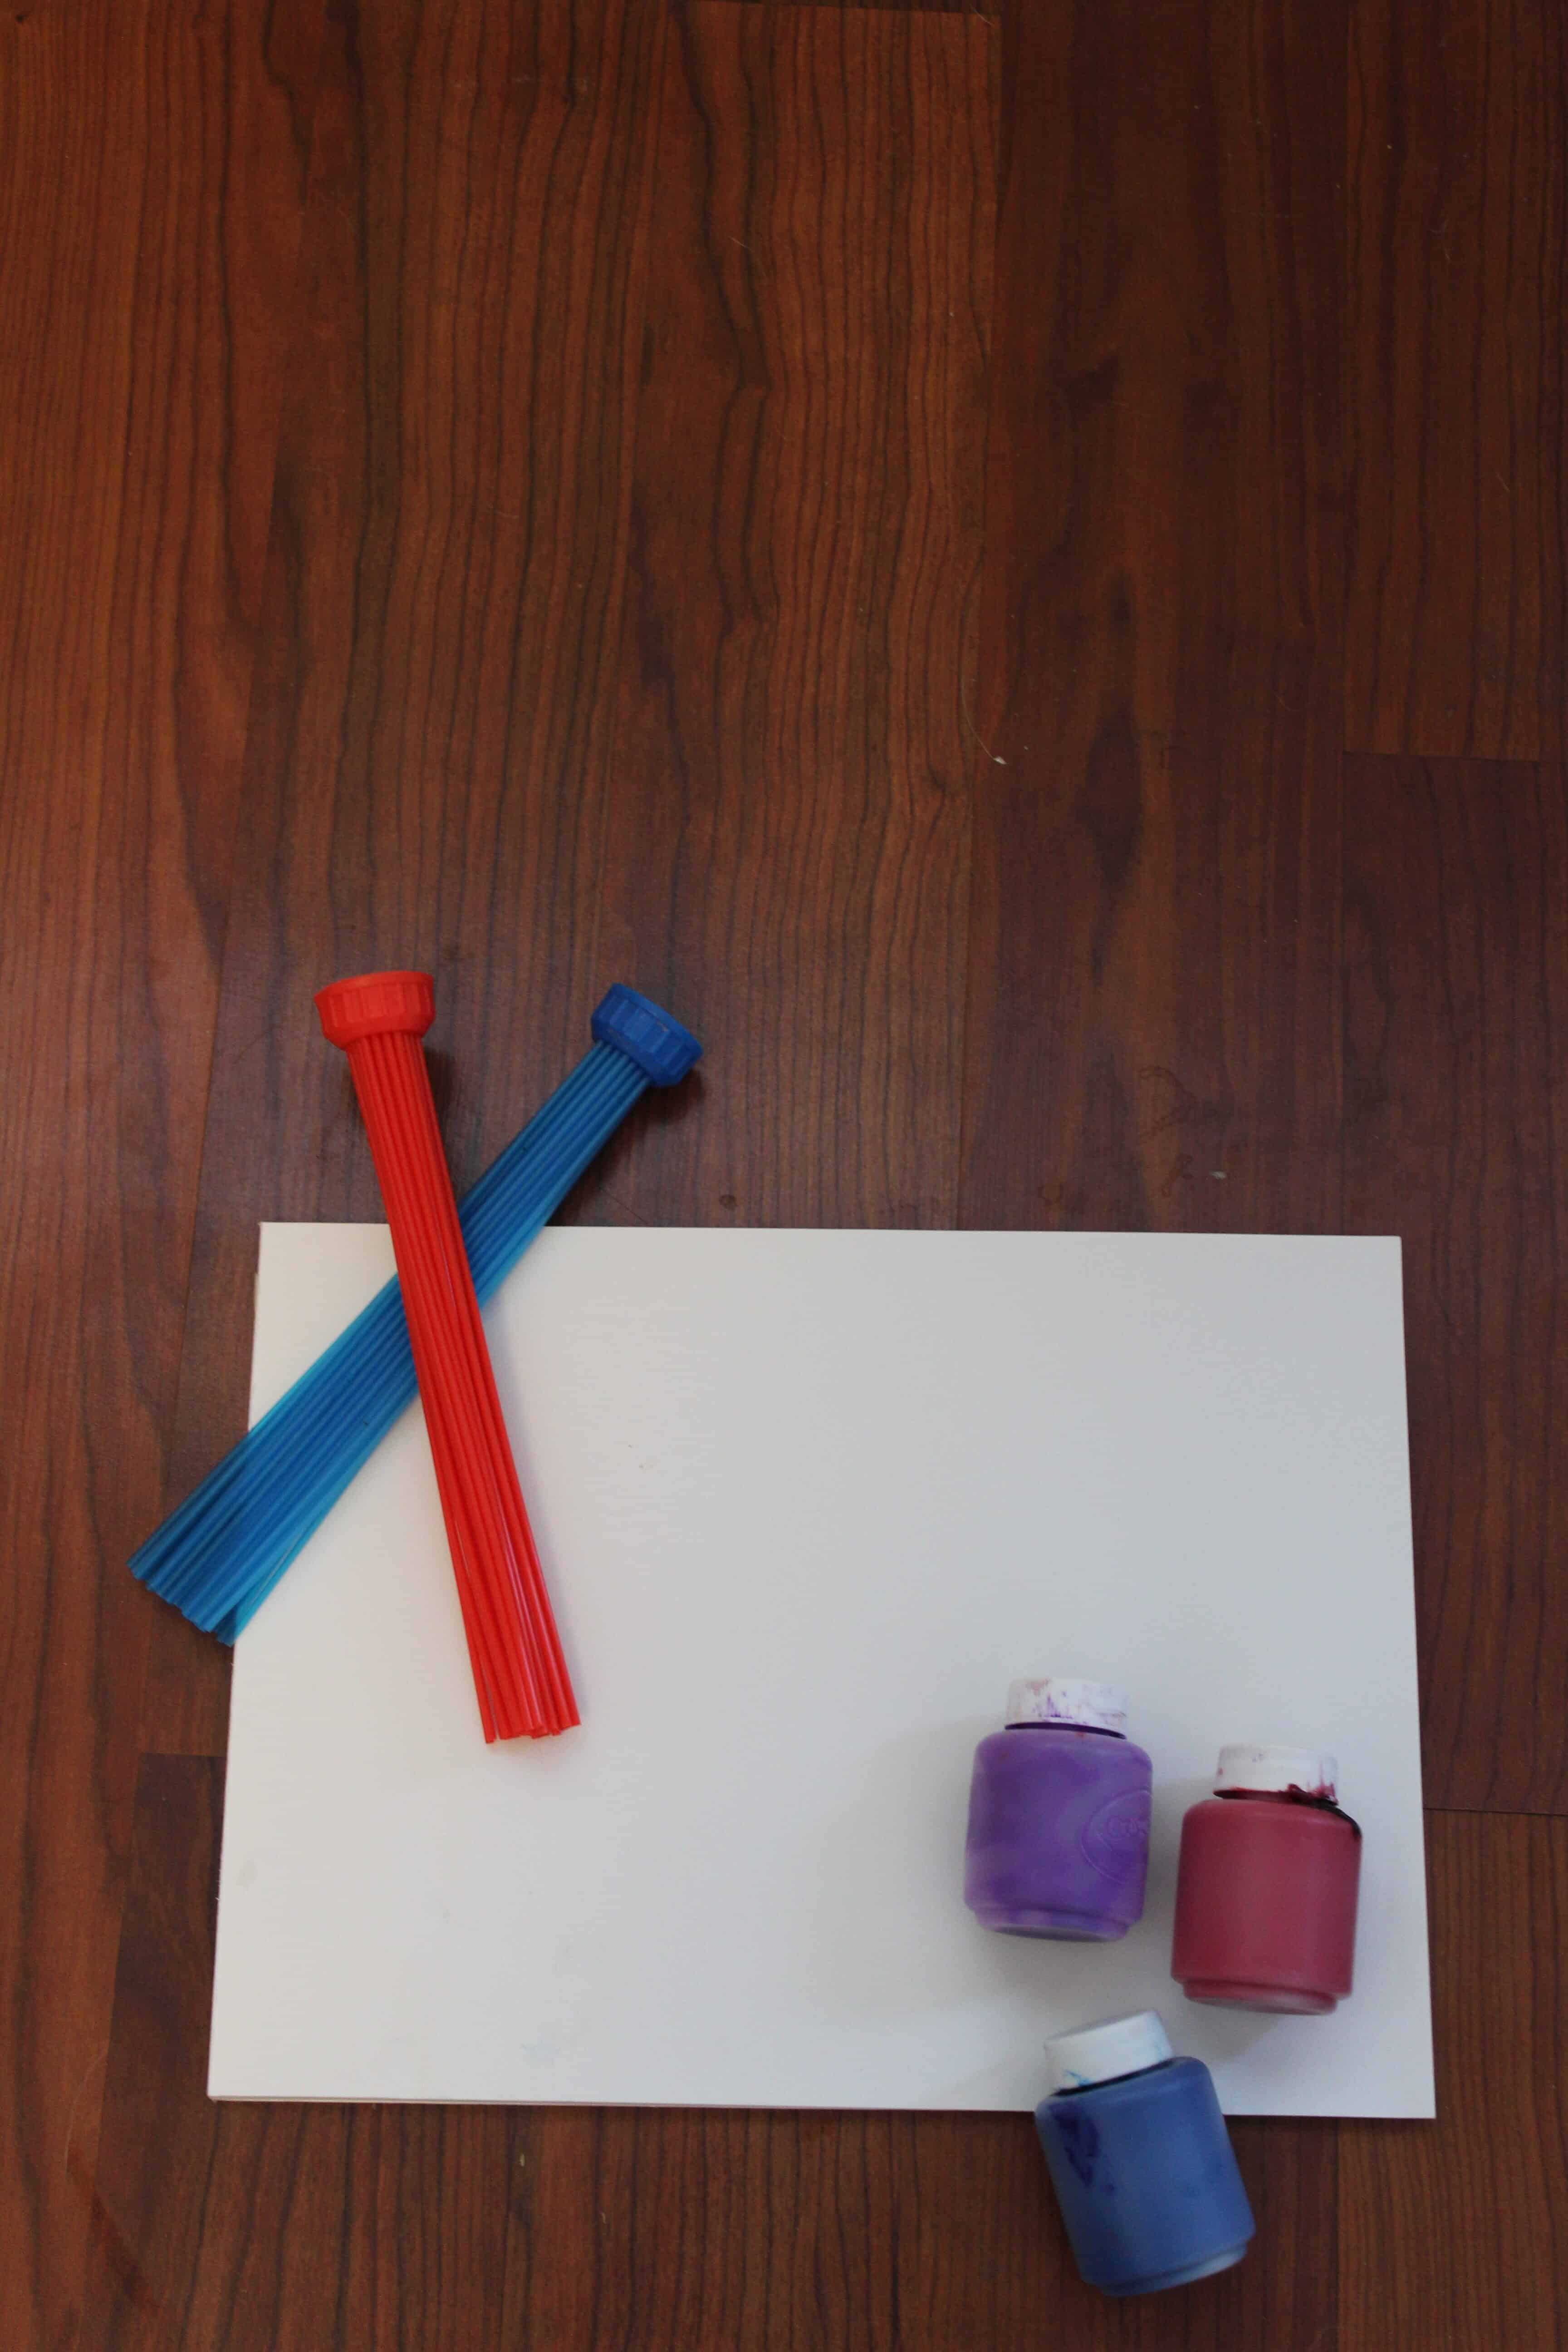 Bunch a balloons fast filler being used as a paintbrush resting against a white sheet of paper. Blue, purple and red paint in bottle.